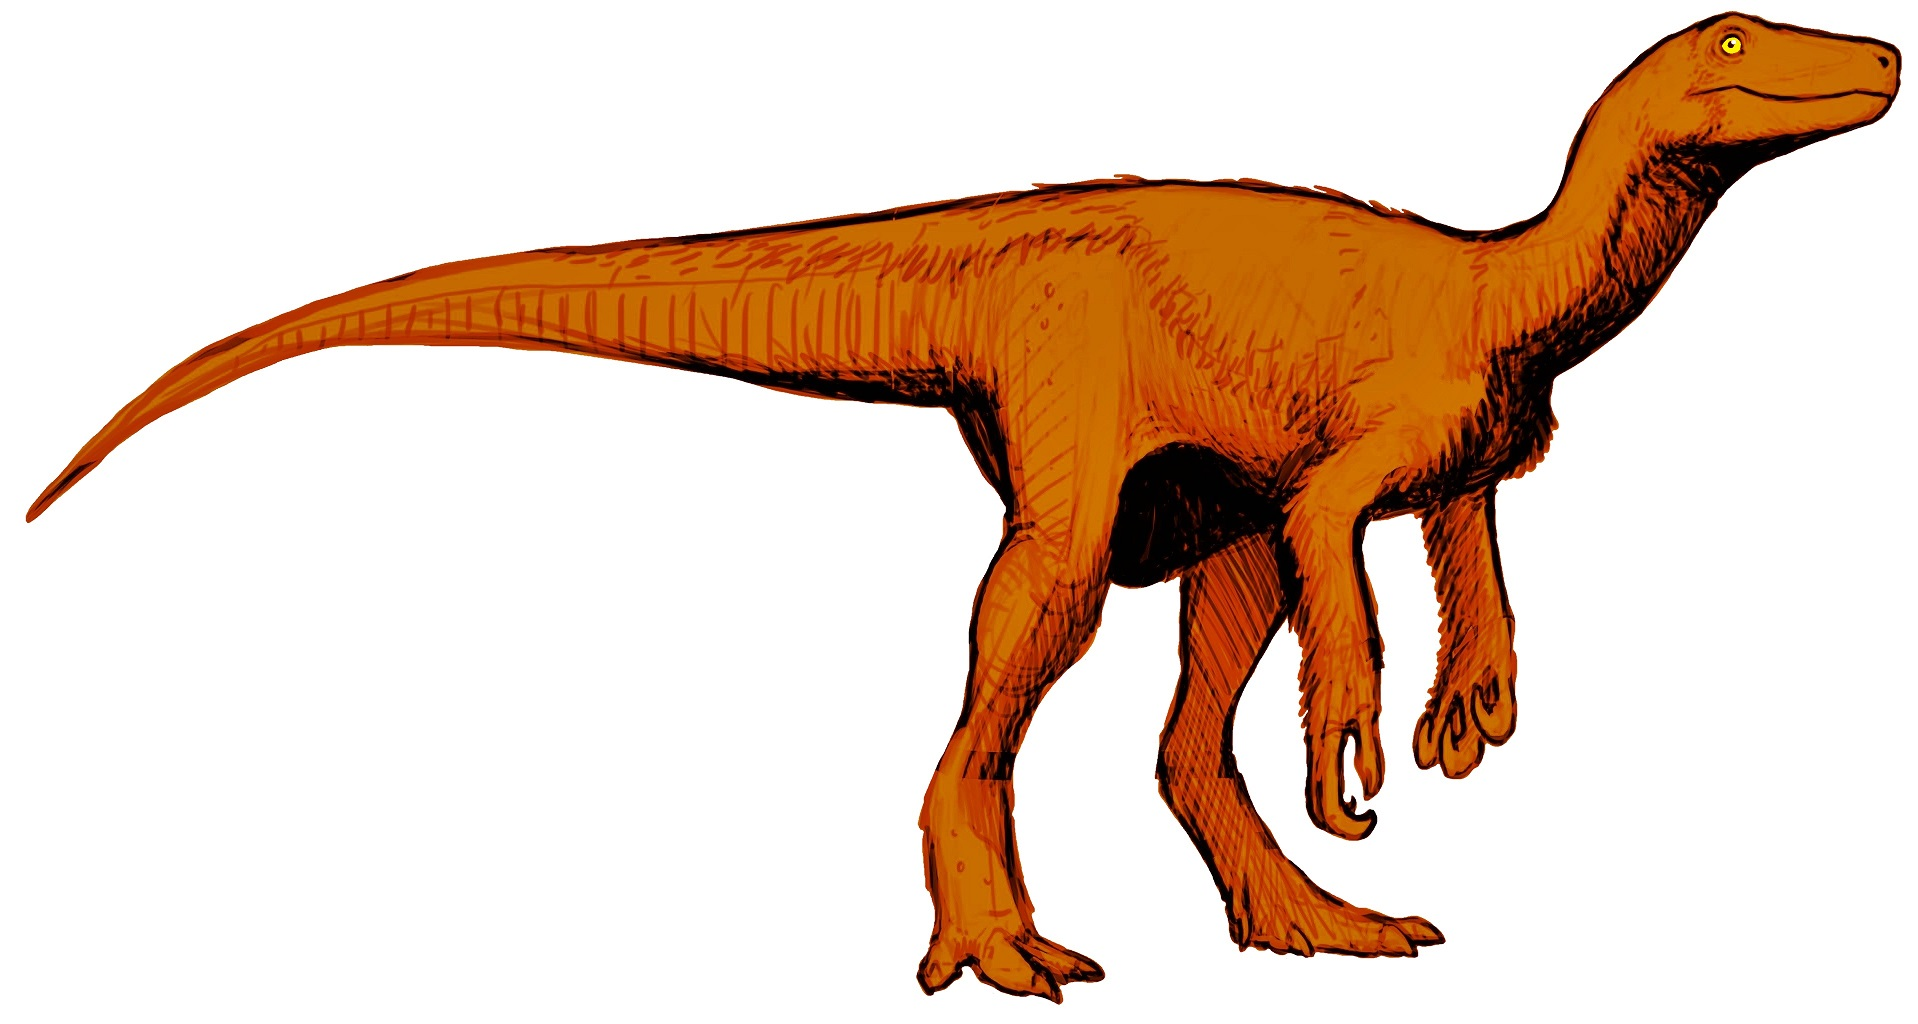 Fileherrerasaurus Reconstruction Flippedjpg Wikimedia Commons